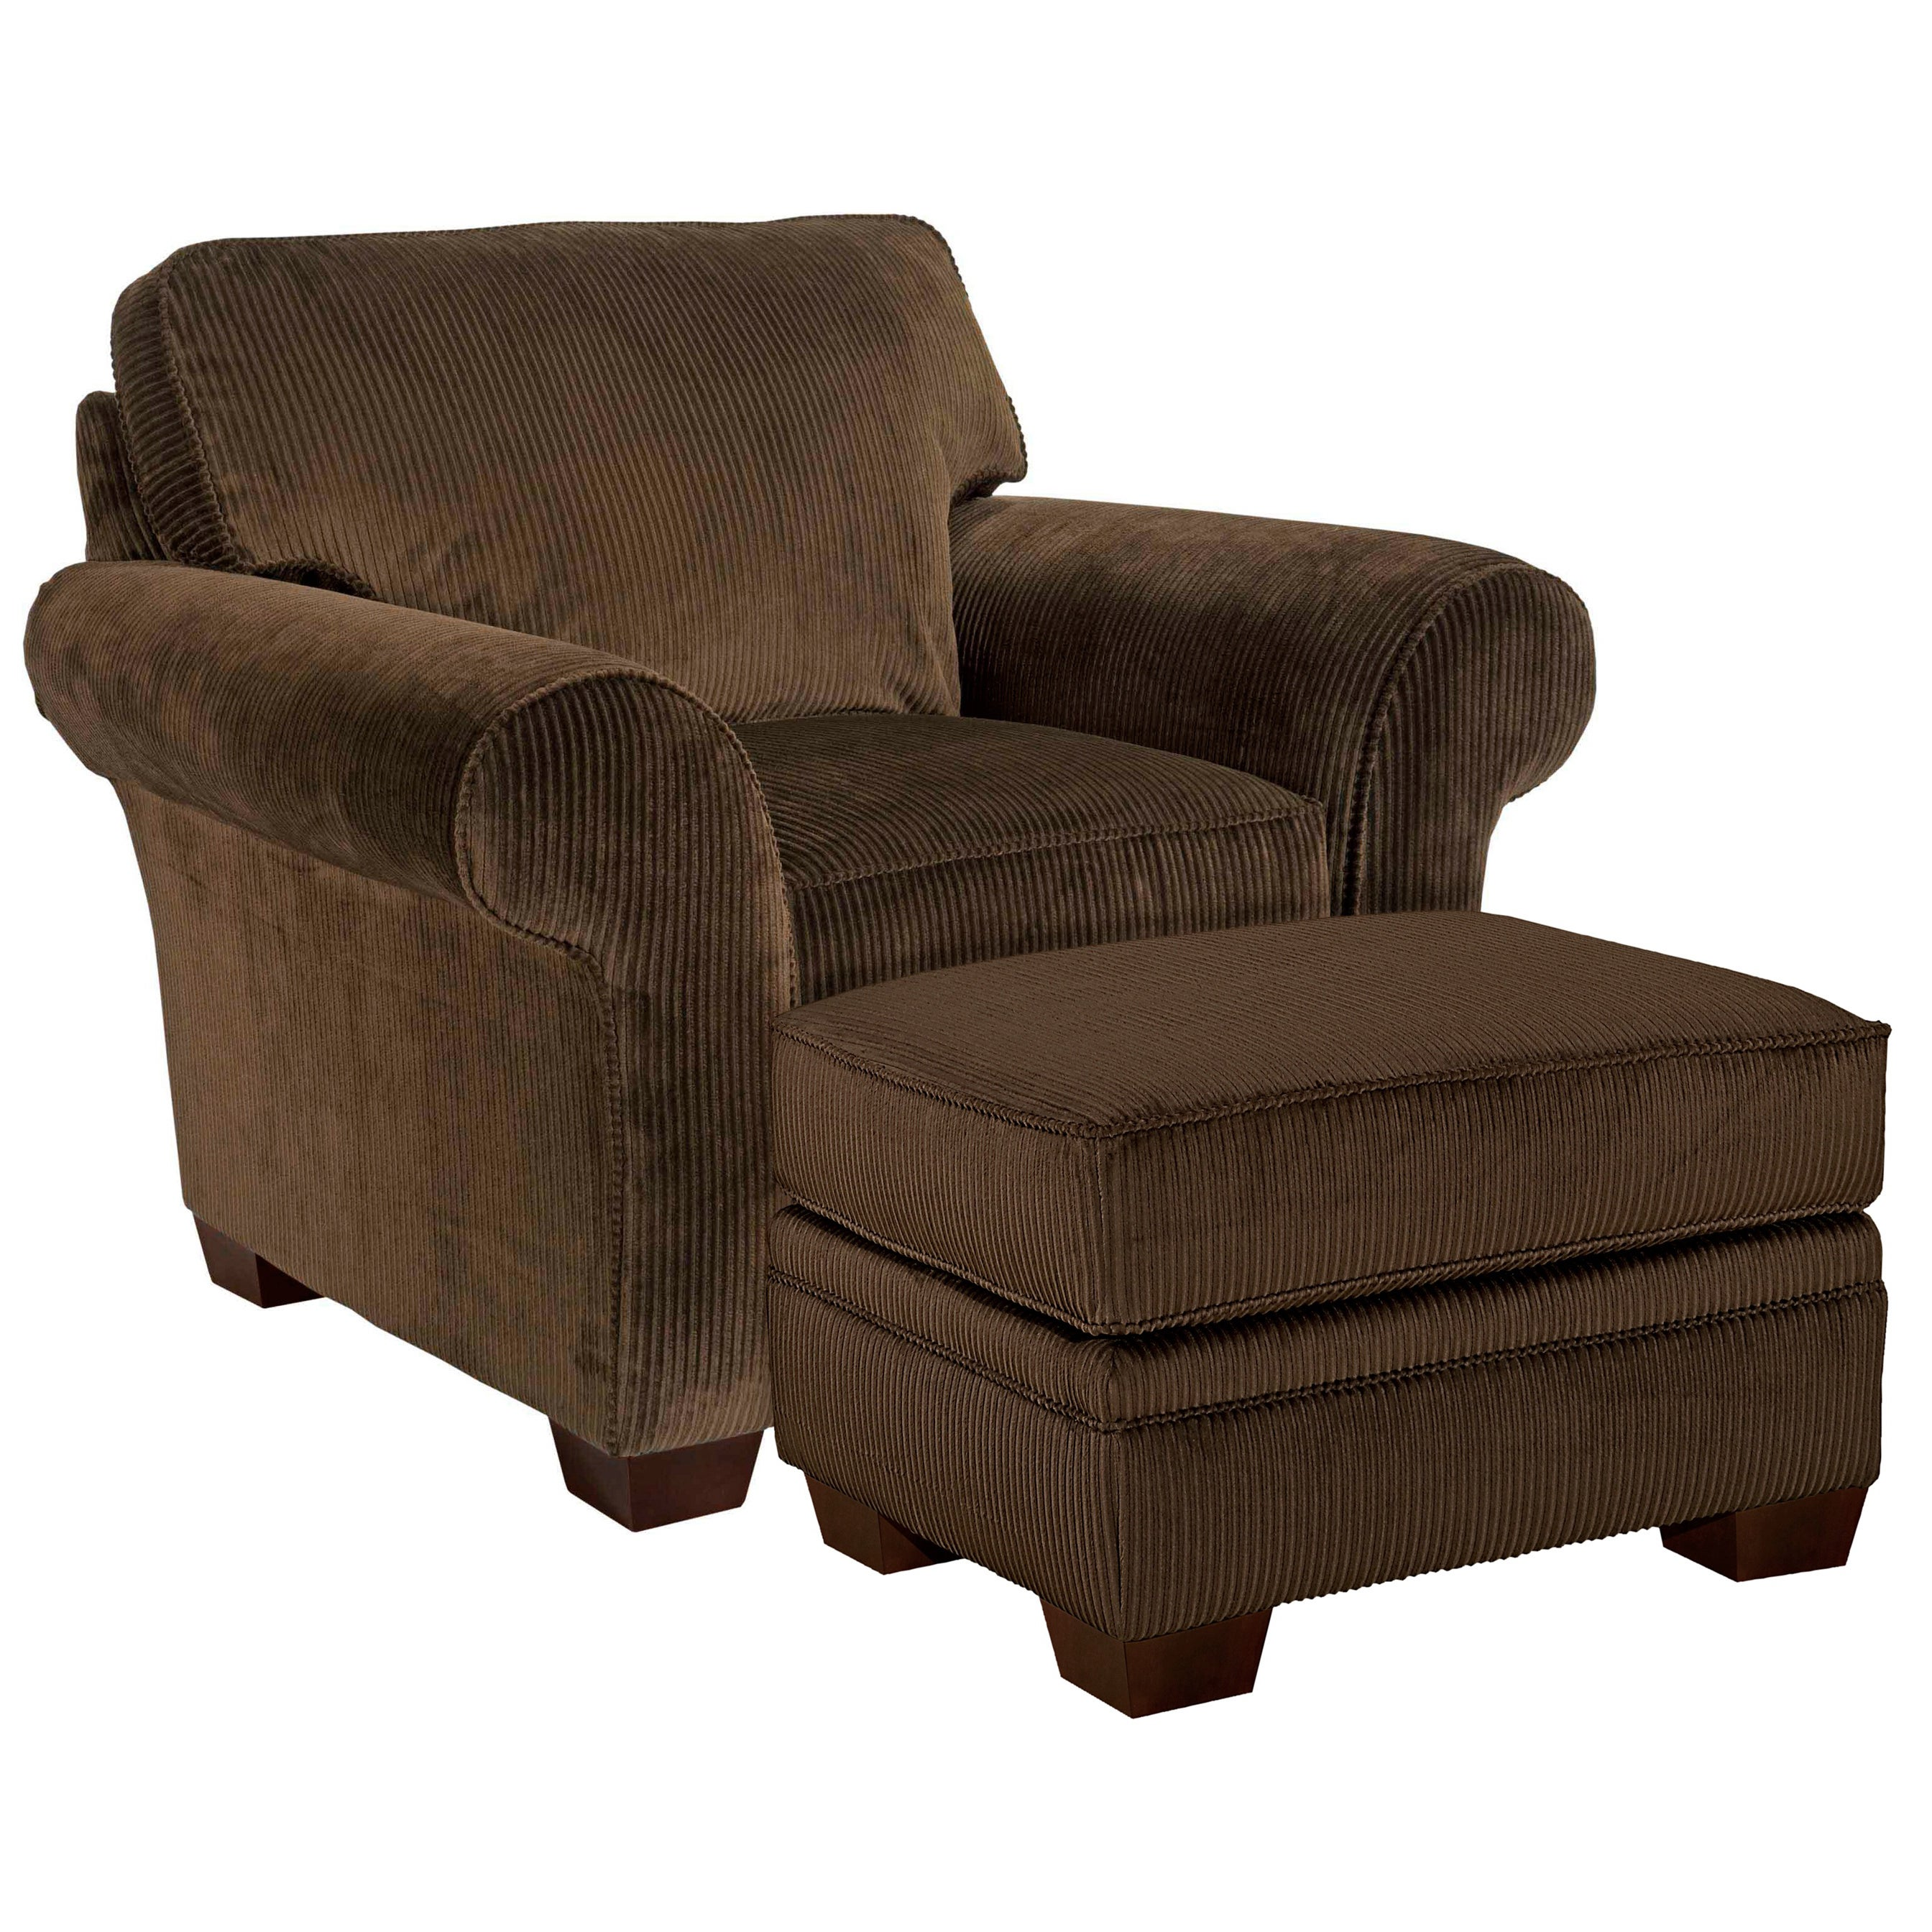 Broyhill Zoey Dark Chocolate Corduroy Chair Ottoman Set Free Shipping Today Overstock Com